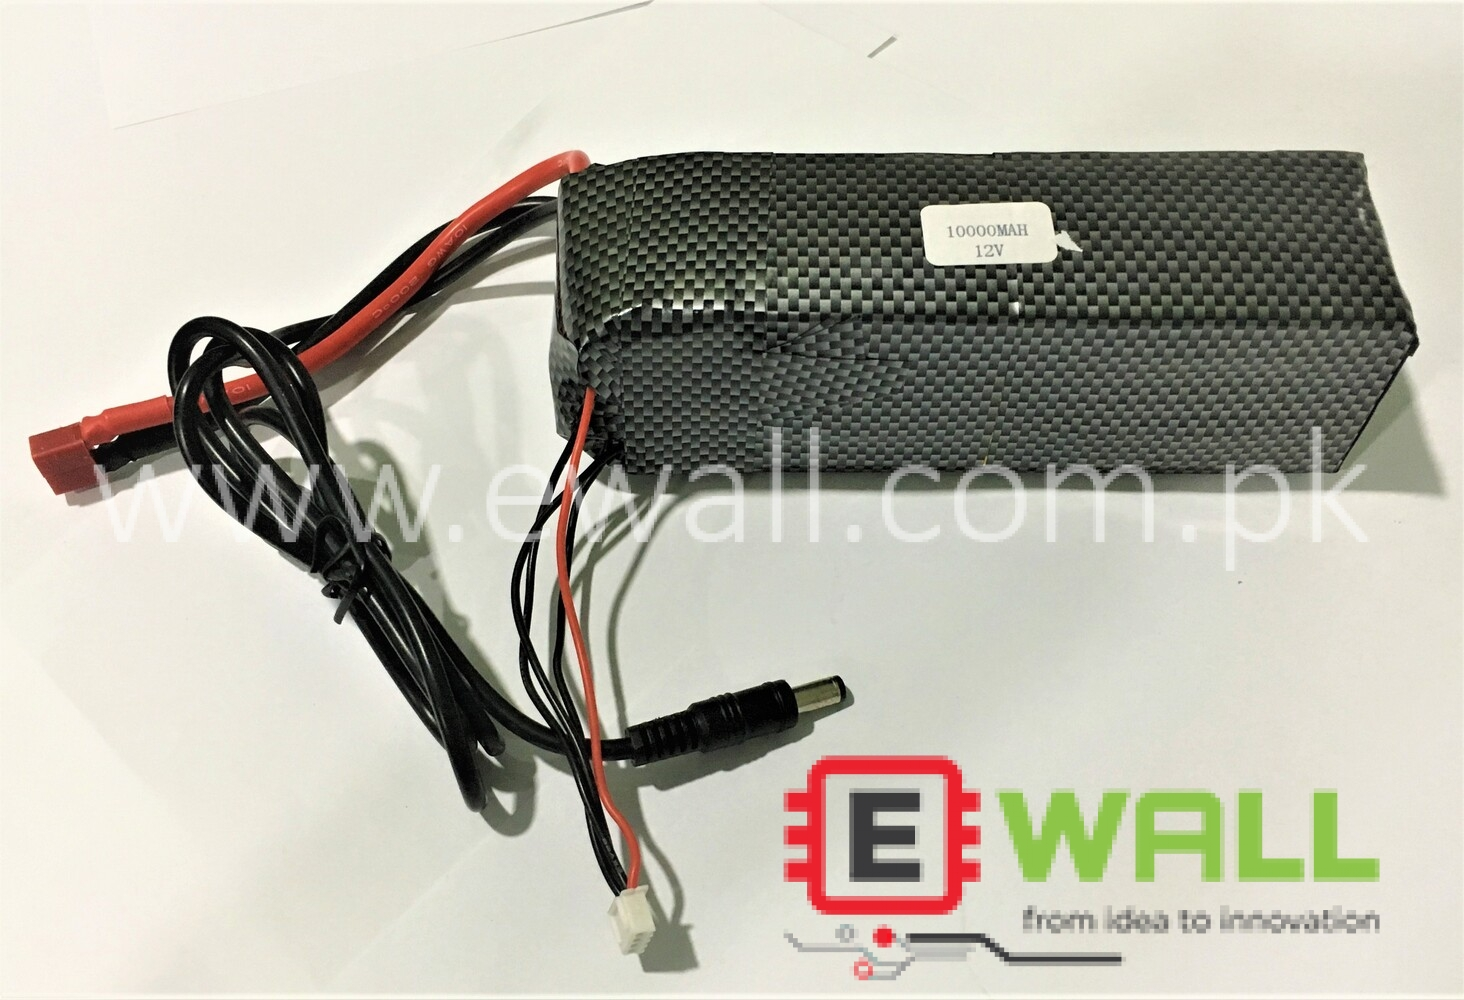 10000mah , on 12V mobile power Lithium-ion Battery